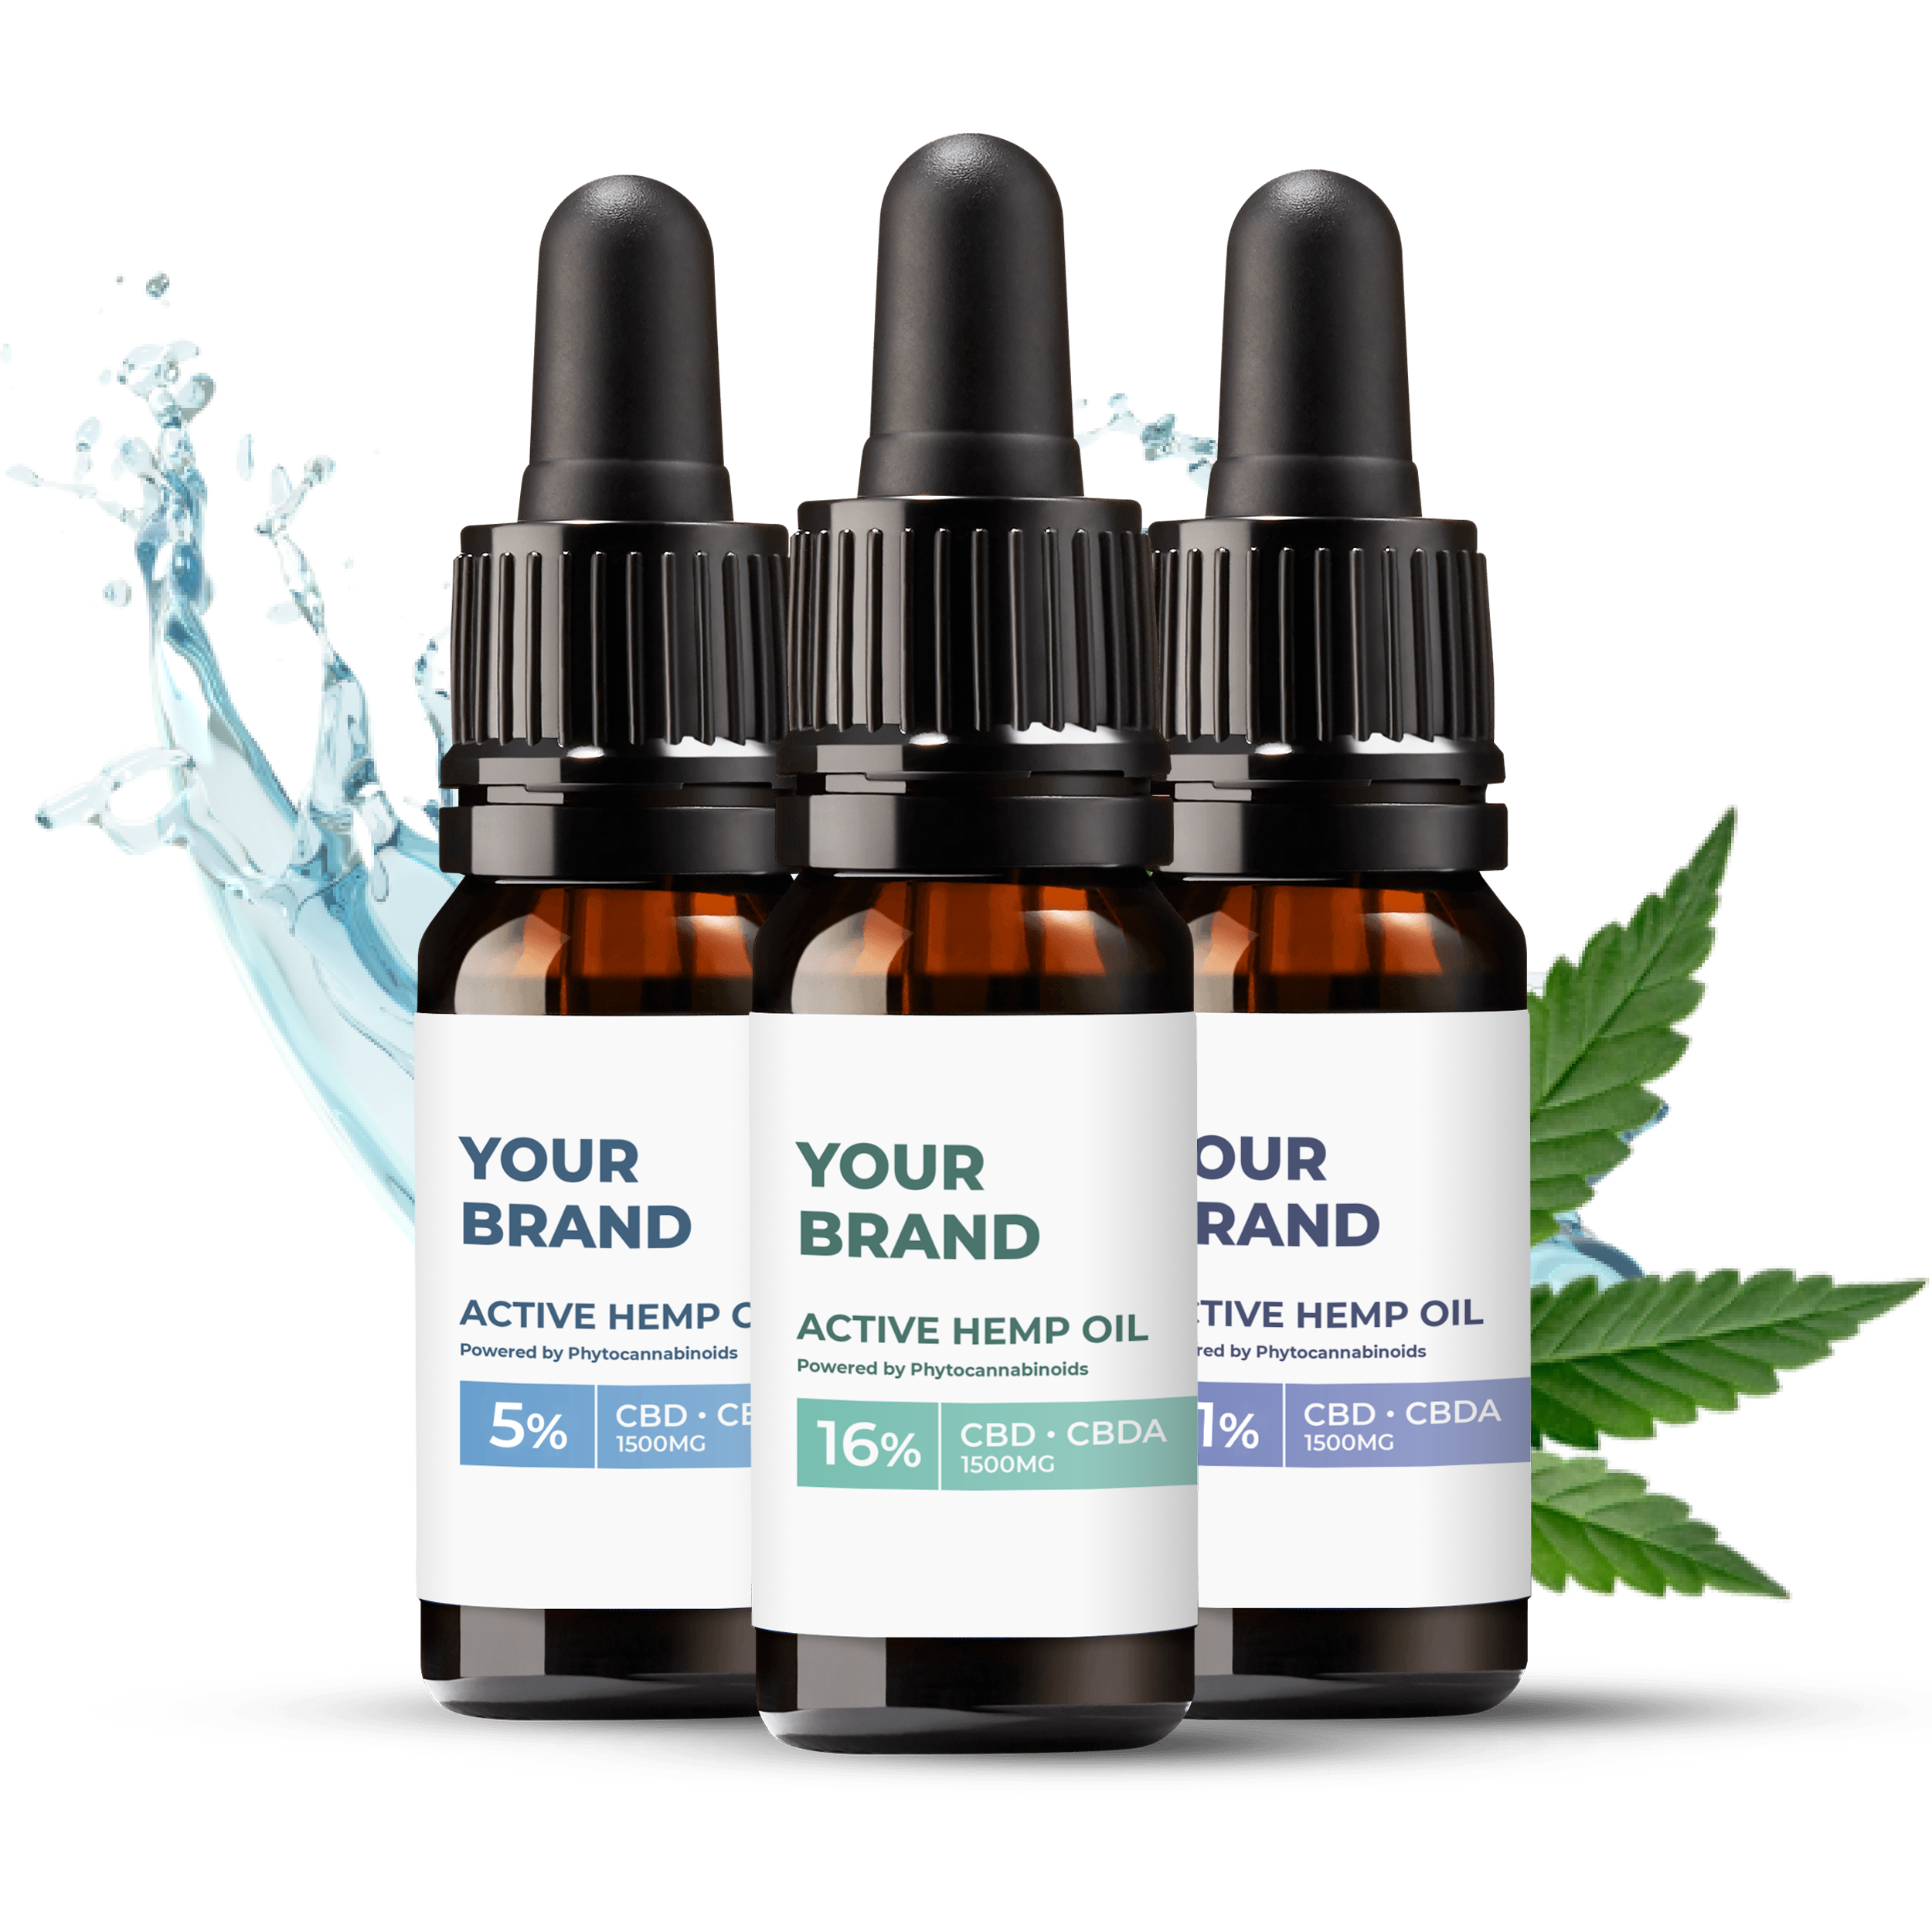 White & Private label Active Hemp CBD Oils supplied in a medical grade glass bottles available in 10, 20 or 30ml bottles